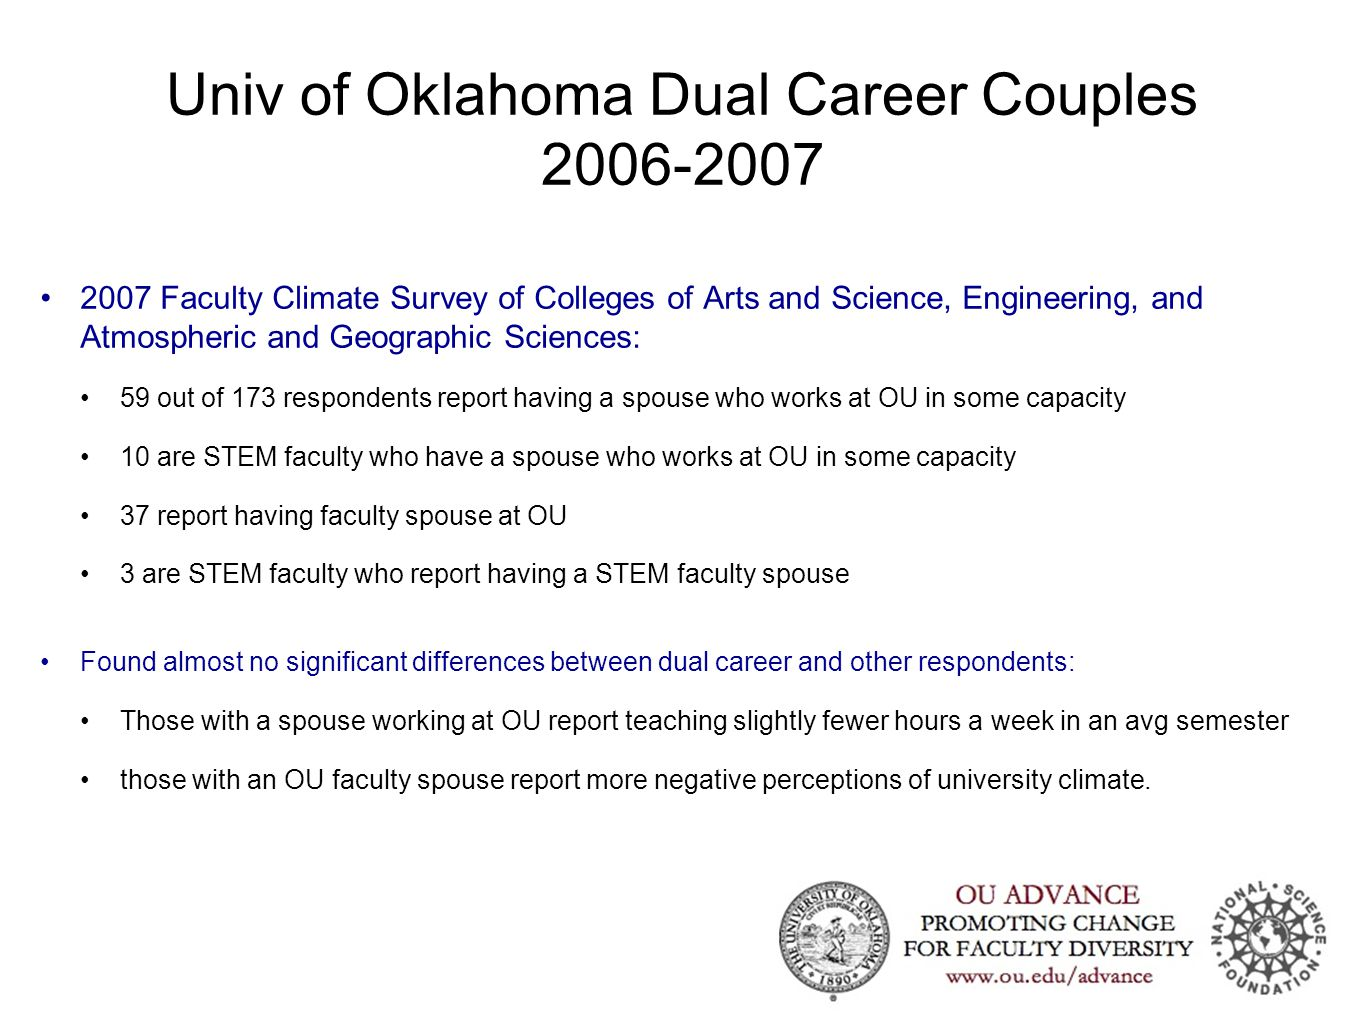 Univ of Oklahoma Dual Career Couples 2006-2007 2007 Faculty Climate Survey of Colleges of Arts and Science, Engineering, and Atmospheric and Geographic Sciences: 59 out of 173 respondents report having a spouse who works at OU in some capacity 10 are STEM faculty who have a spouse who works at OU in some capacity 37 report having faculty spouse at OU 3 are STEM faculty who report having a STEM faculty spouse Found almost no significant differences between dual career and other respondents: Those with a spouse working at OU report teaching slightly fewer hours a week in an avg semester those with an OU faculty spouse report more negative perceptions of university climate.